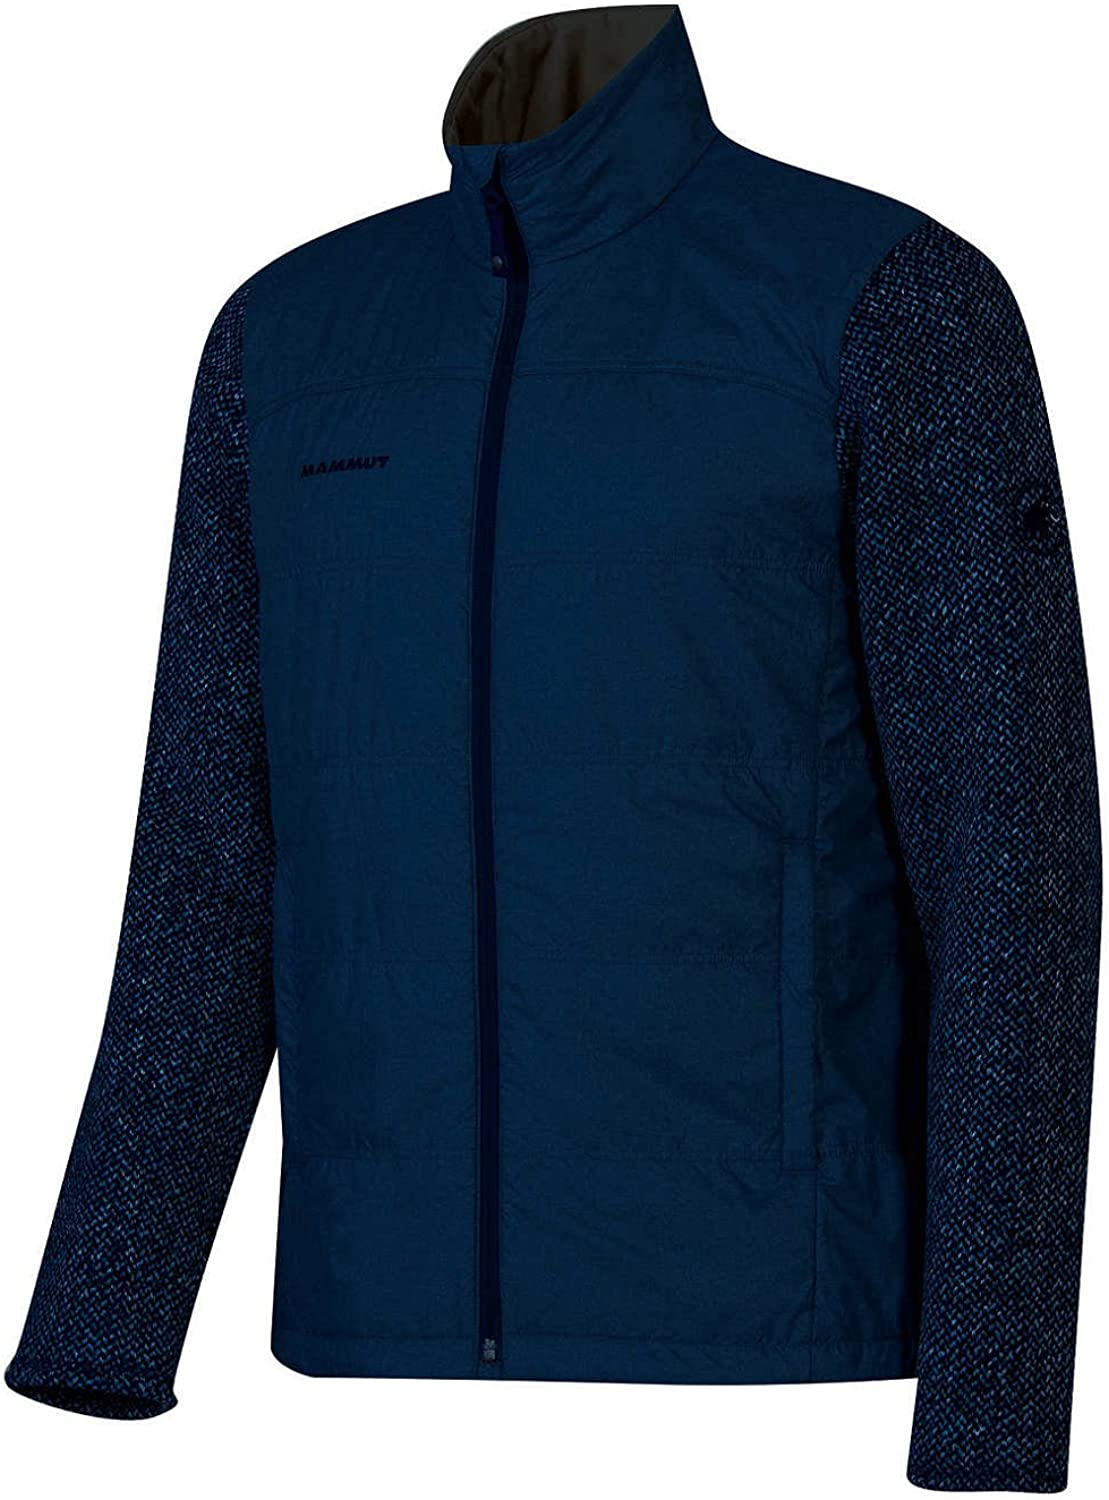 Mammut TROVAT ADVANCED JACKET Isolationsjacke Herren